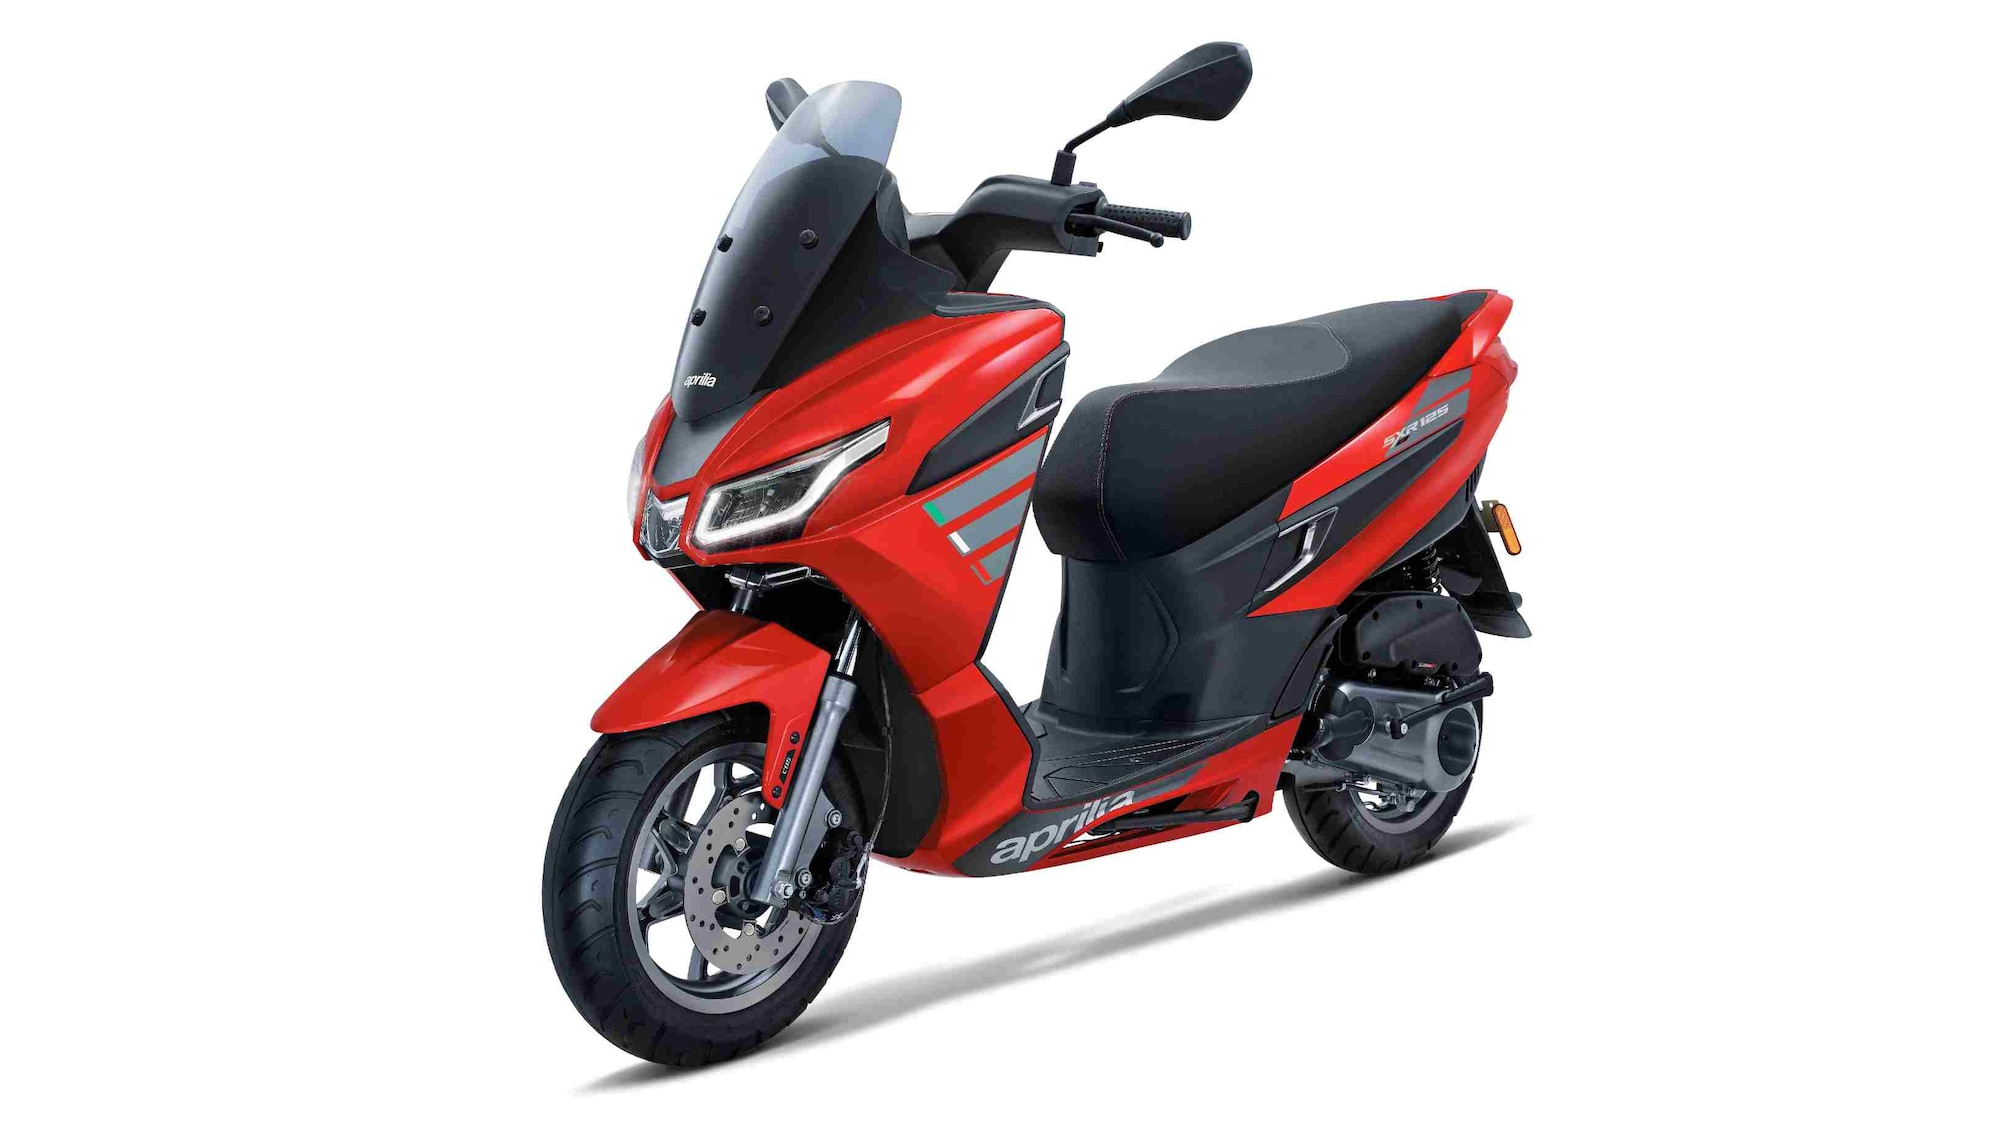 The Aprilia SXR 125 is notably less powerful than the SXR 160, and also misses out on ABS. Image: Aprilia